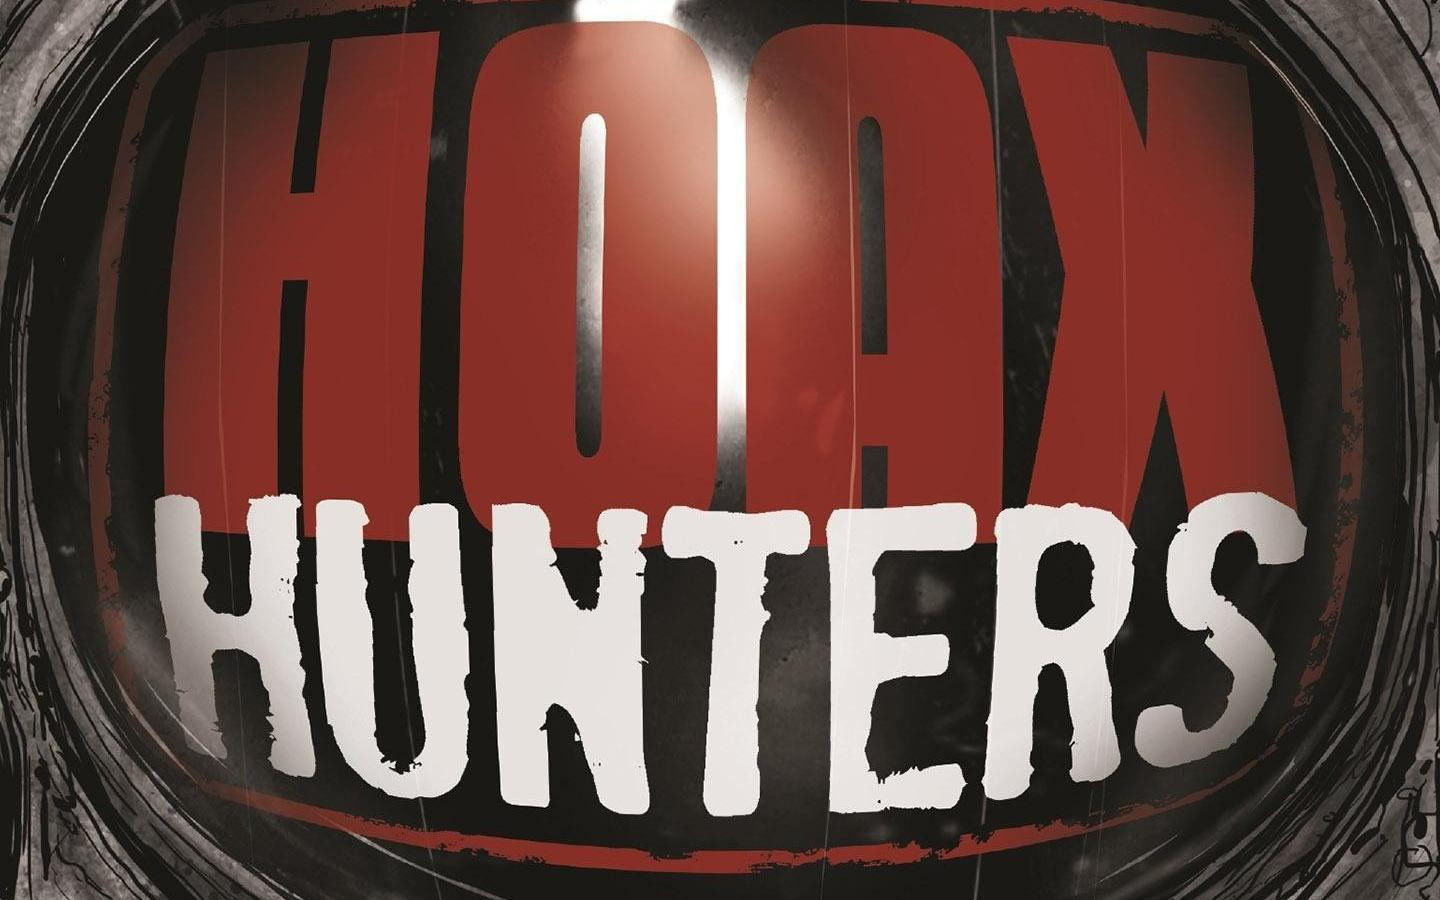 1440x900 - Hoax Hunters Wallpapers 22